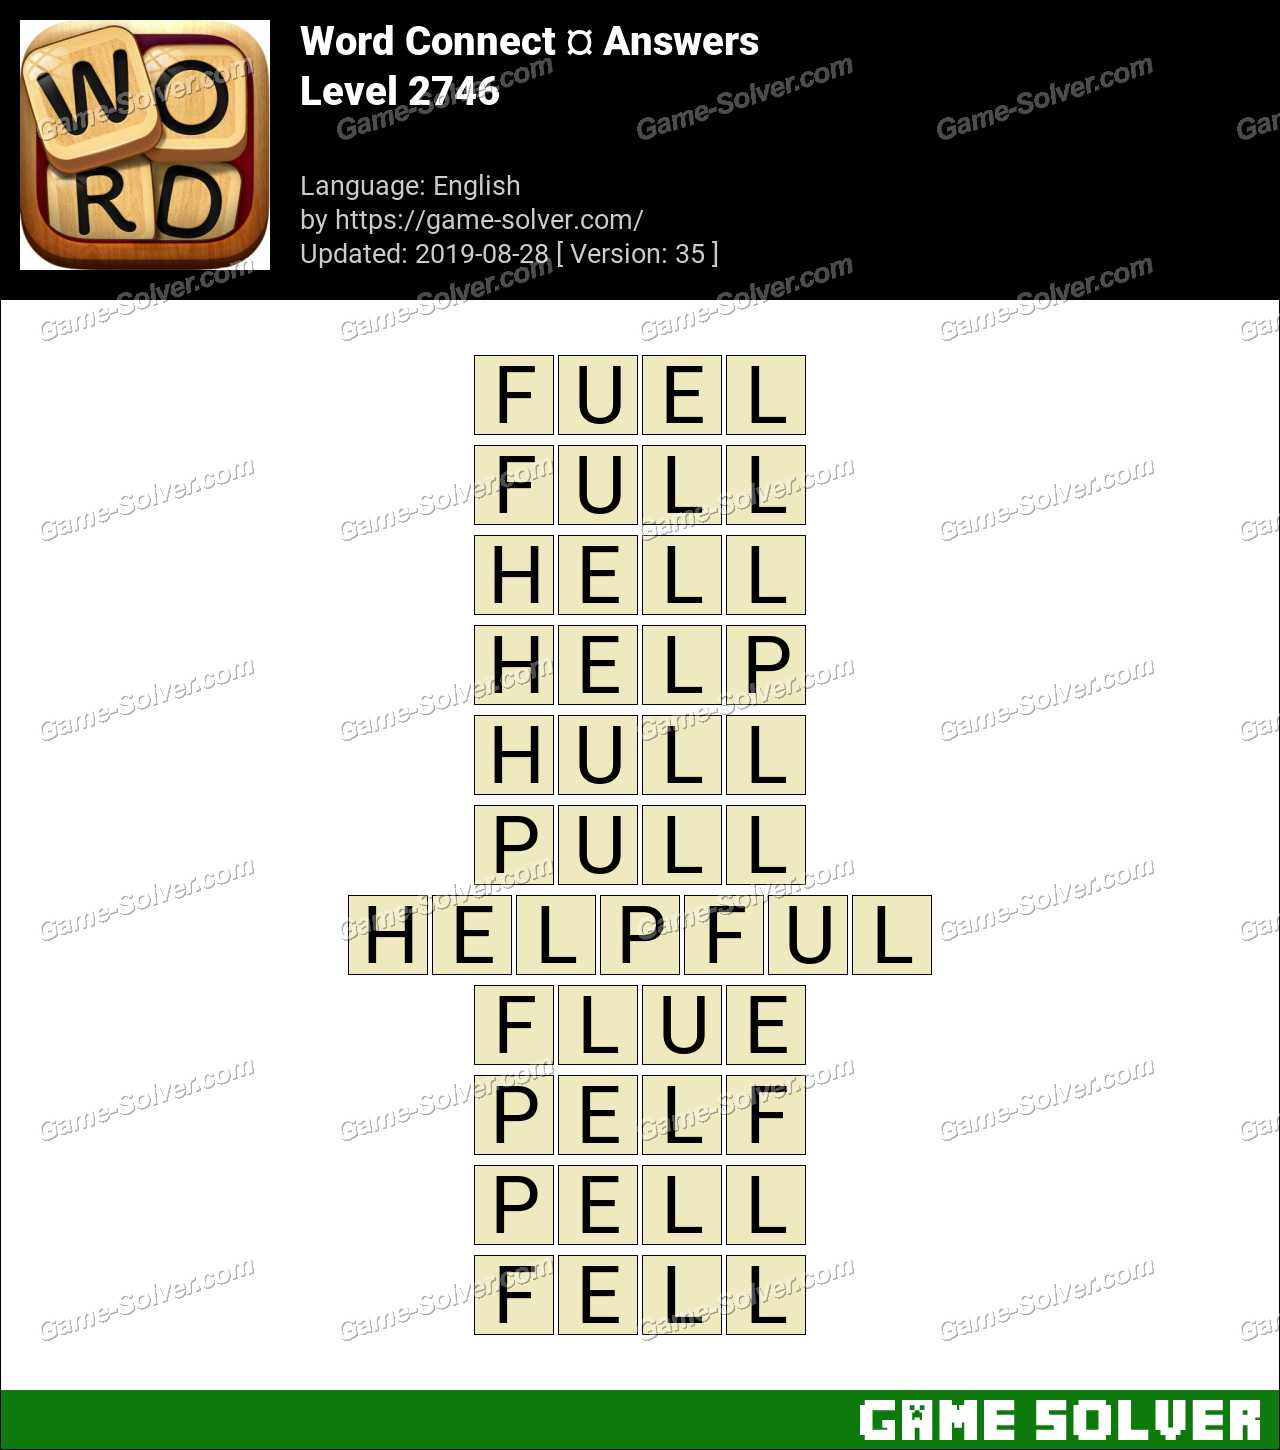 Word Connect Level 2746 Answers